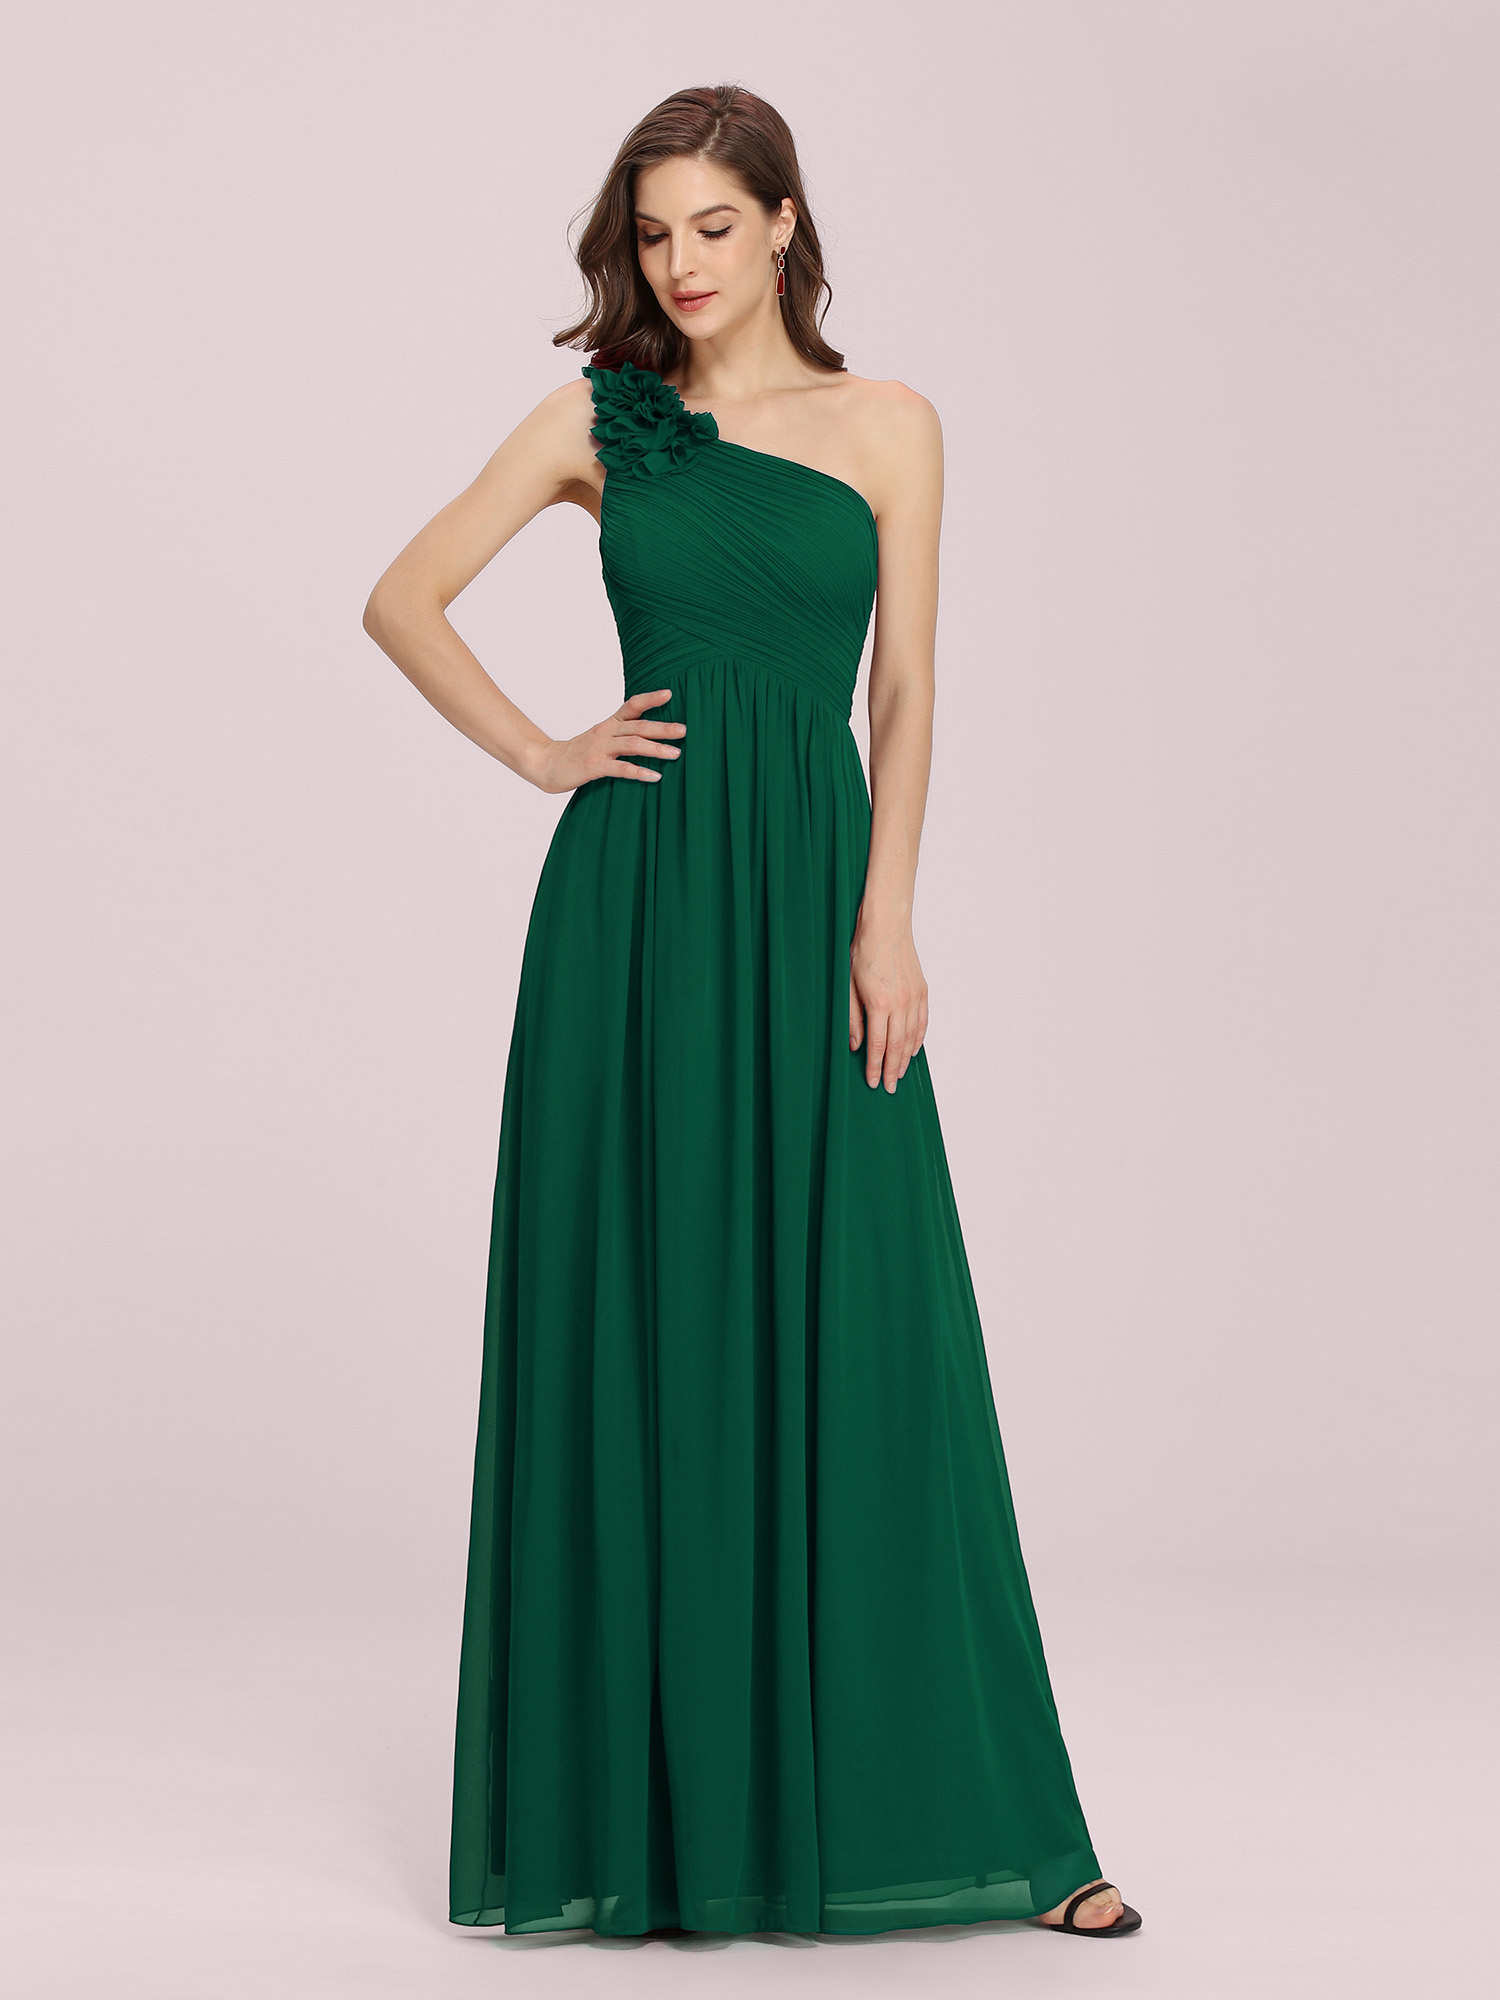 green dresses for wedding pretty one shoulder bridesmaid dresses applique 4609